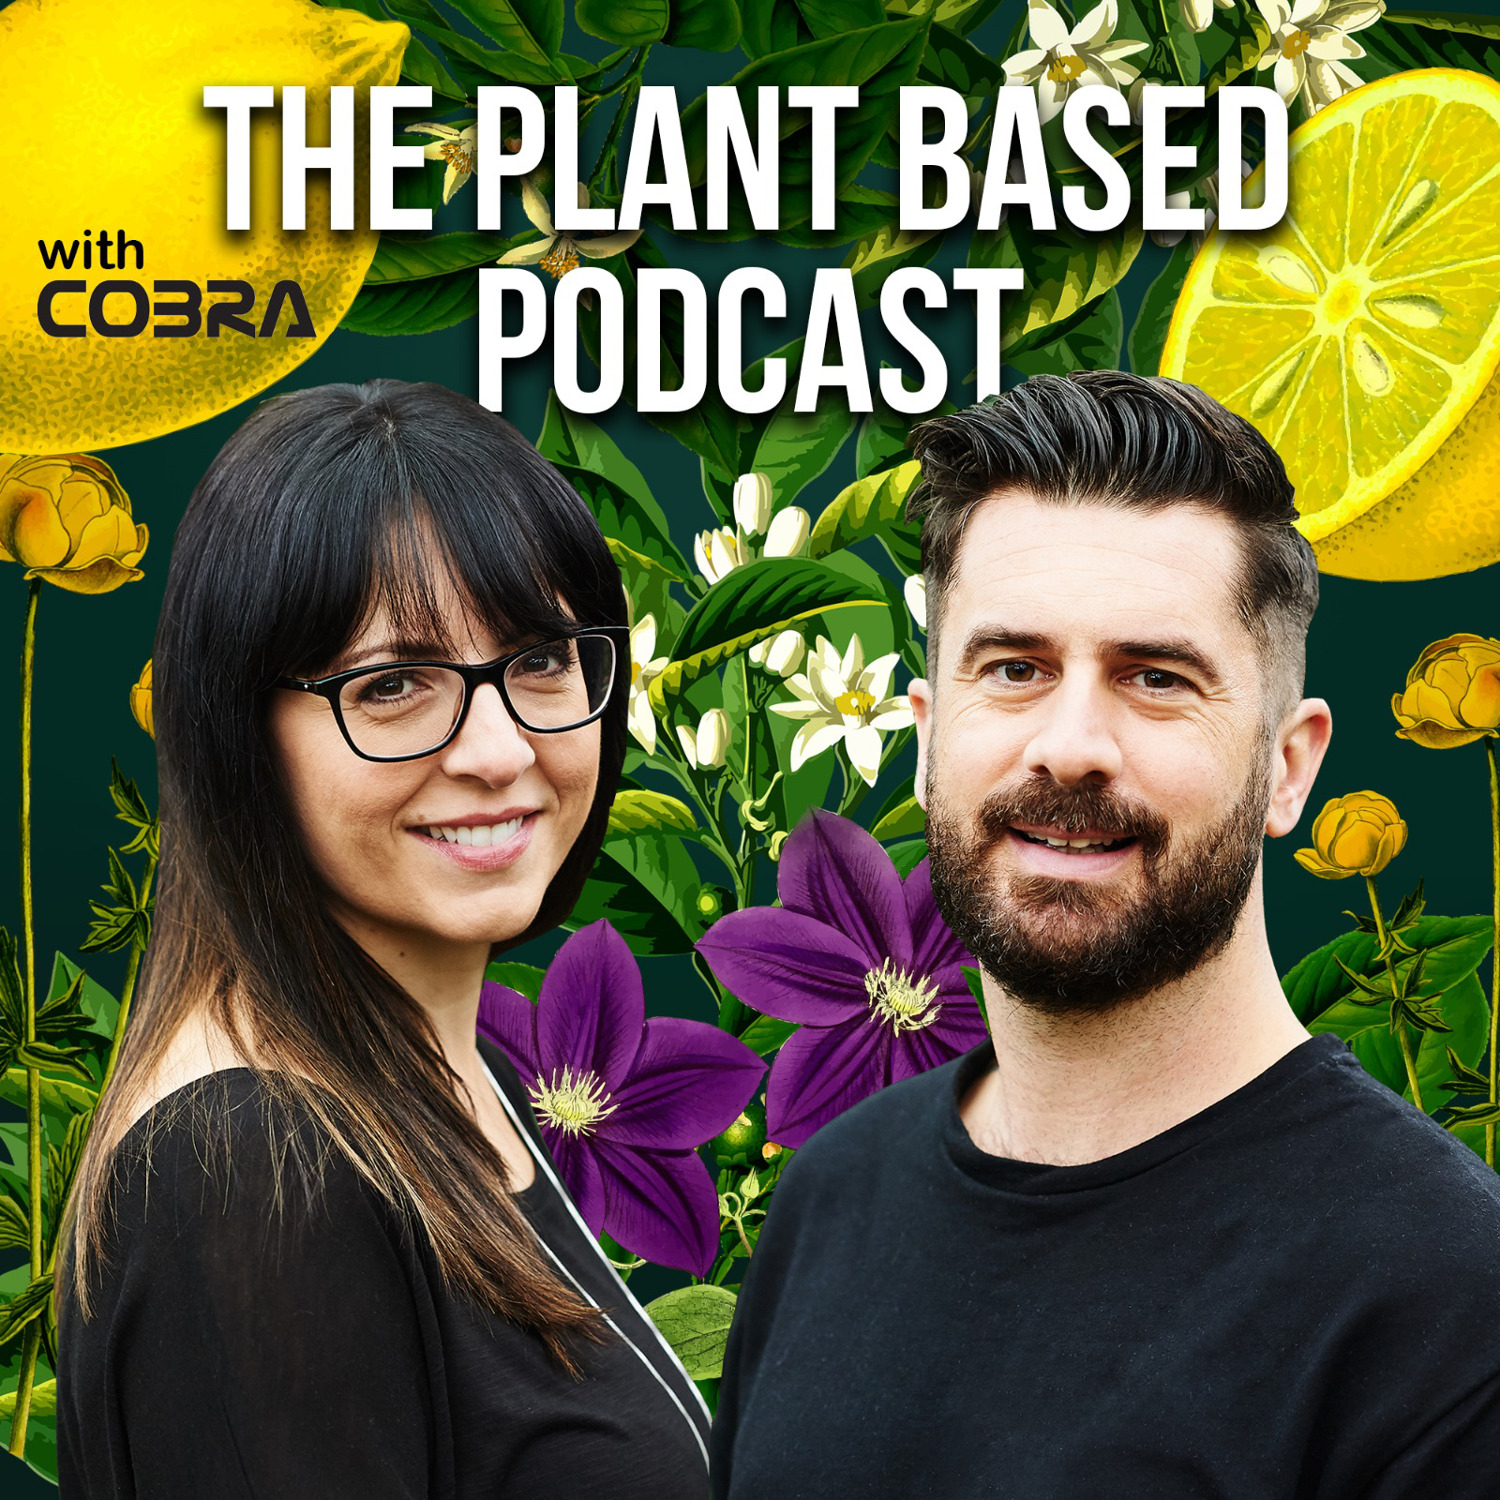 The Plant Based Podcast S4 Episode Ten - Tomato talk with Sterling Suffolk!